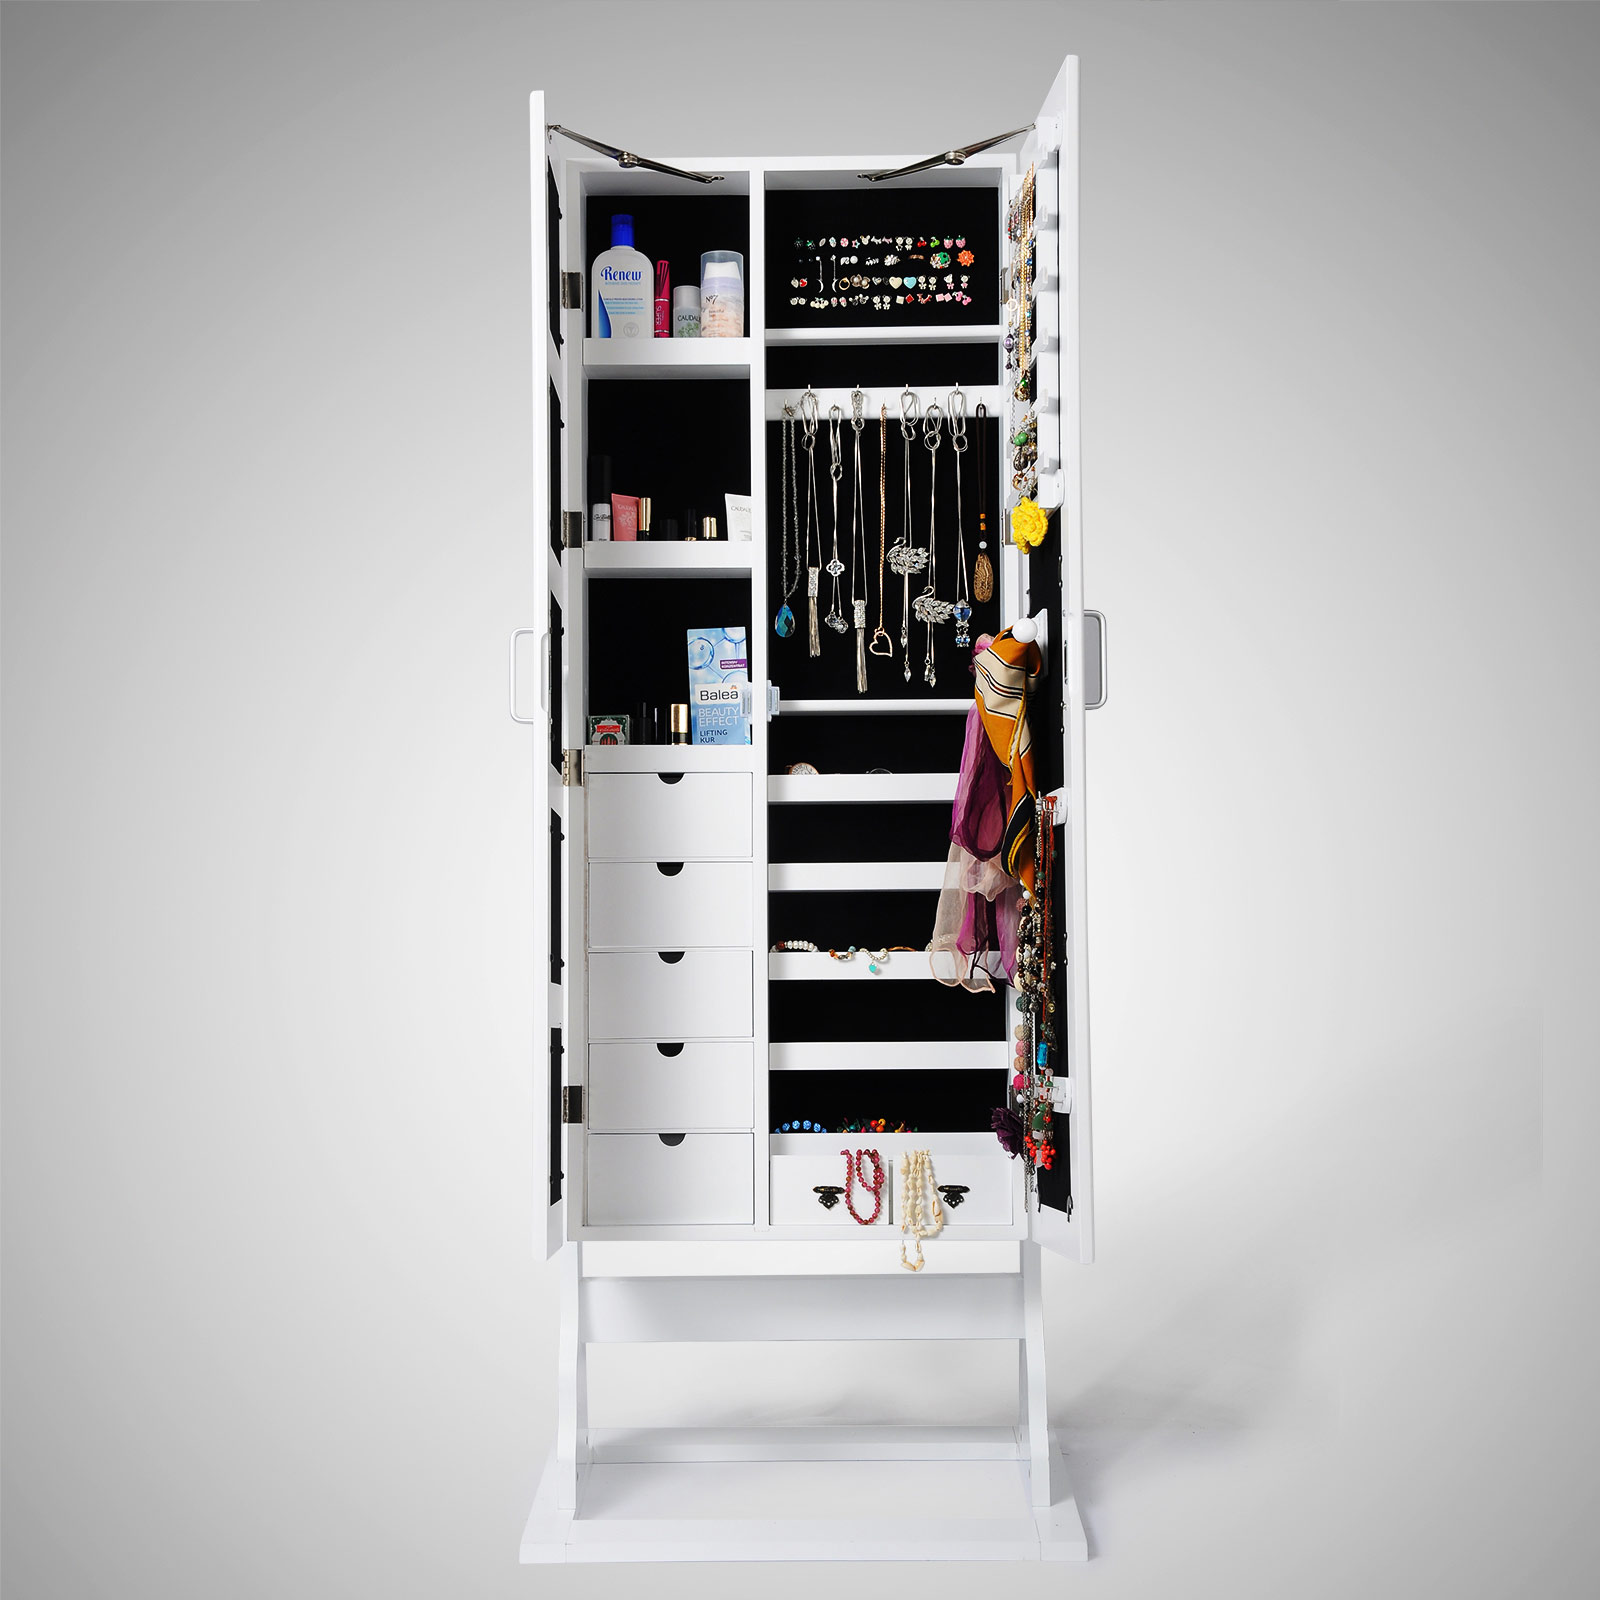 schmuckschrank standspiegel spiegelschrank schmuckkasten weiss schwarz neu 183 ebay. Black Bedroom Furniture Sets. Home Design Ideas